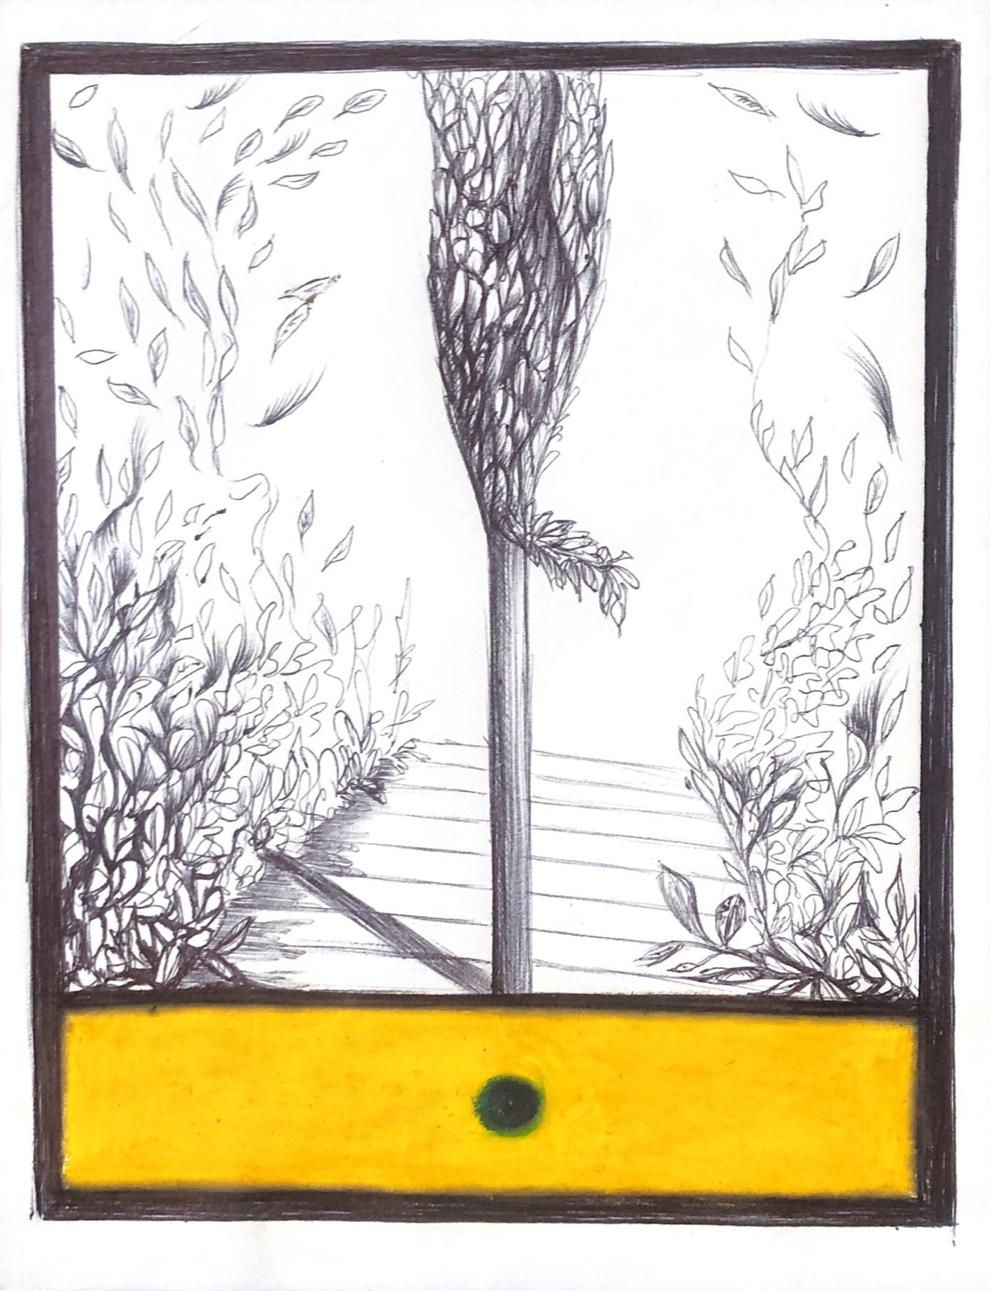 The Tree of Paxos, mixed media work on paper, yellow